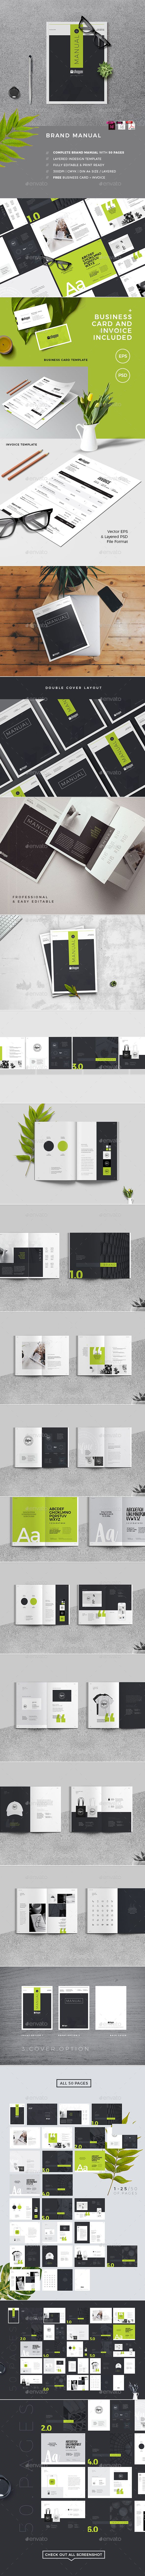 Brand Manual — InDesign INDD #print branding #print catalogue • Download ➝ https://graphicriver.net/item/brand-manual/21414213?ref=pxcr